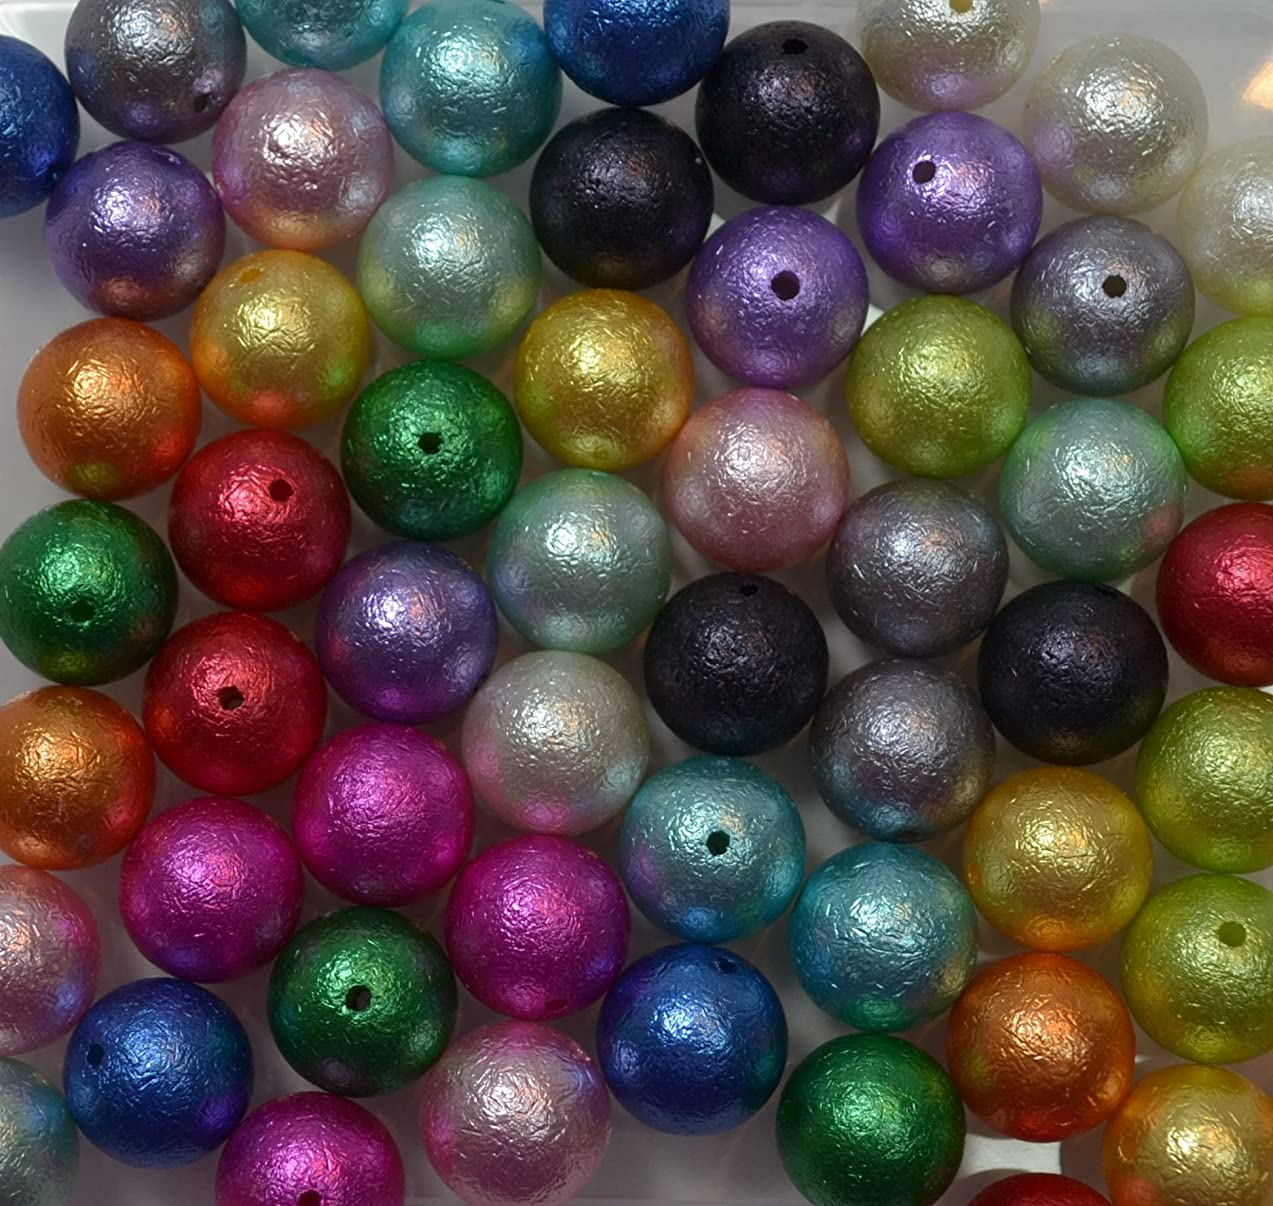 20mm Bulk Mix of 56 Crinkle Wrinkle Faux Pearl Chunky Bubblegum Beads 14 Colors Acrylic Gumball Beads Lot